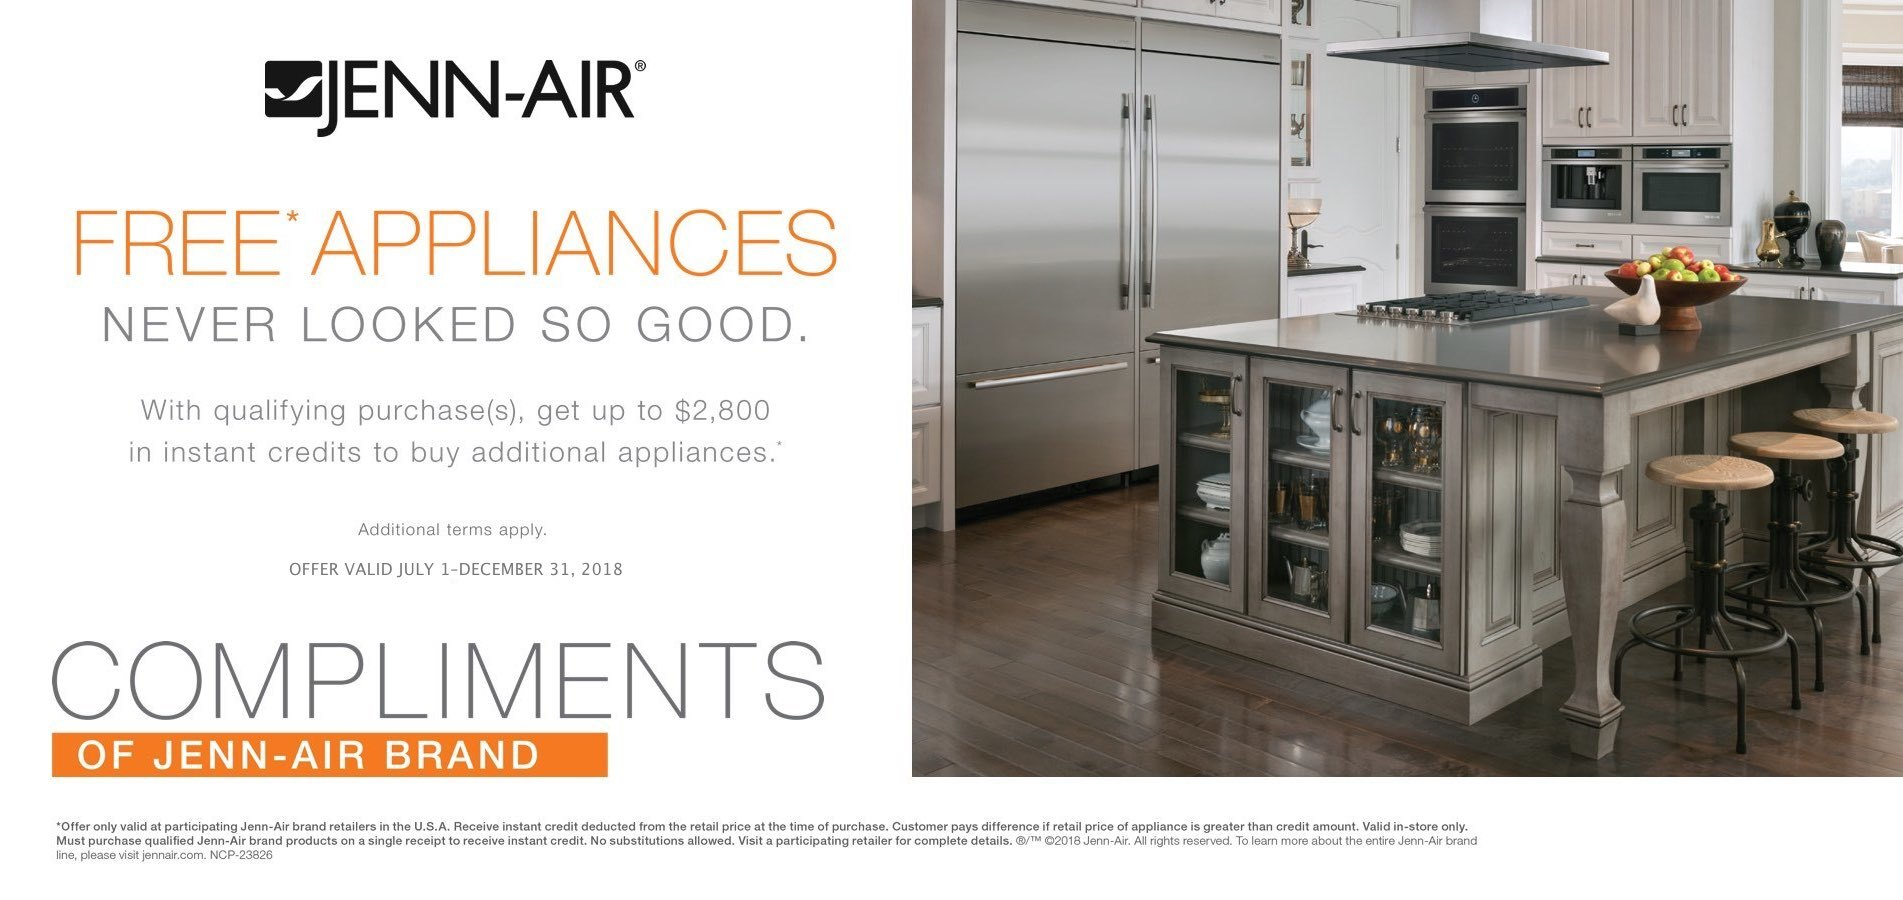 Jenn-Air Free Appliances